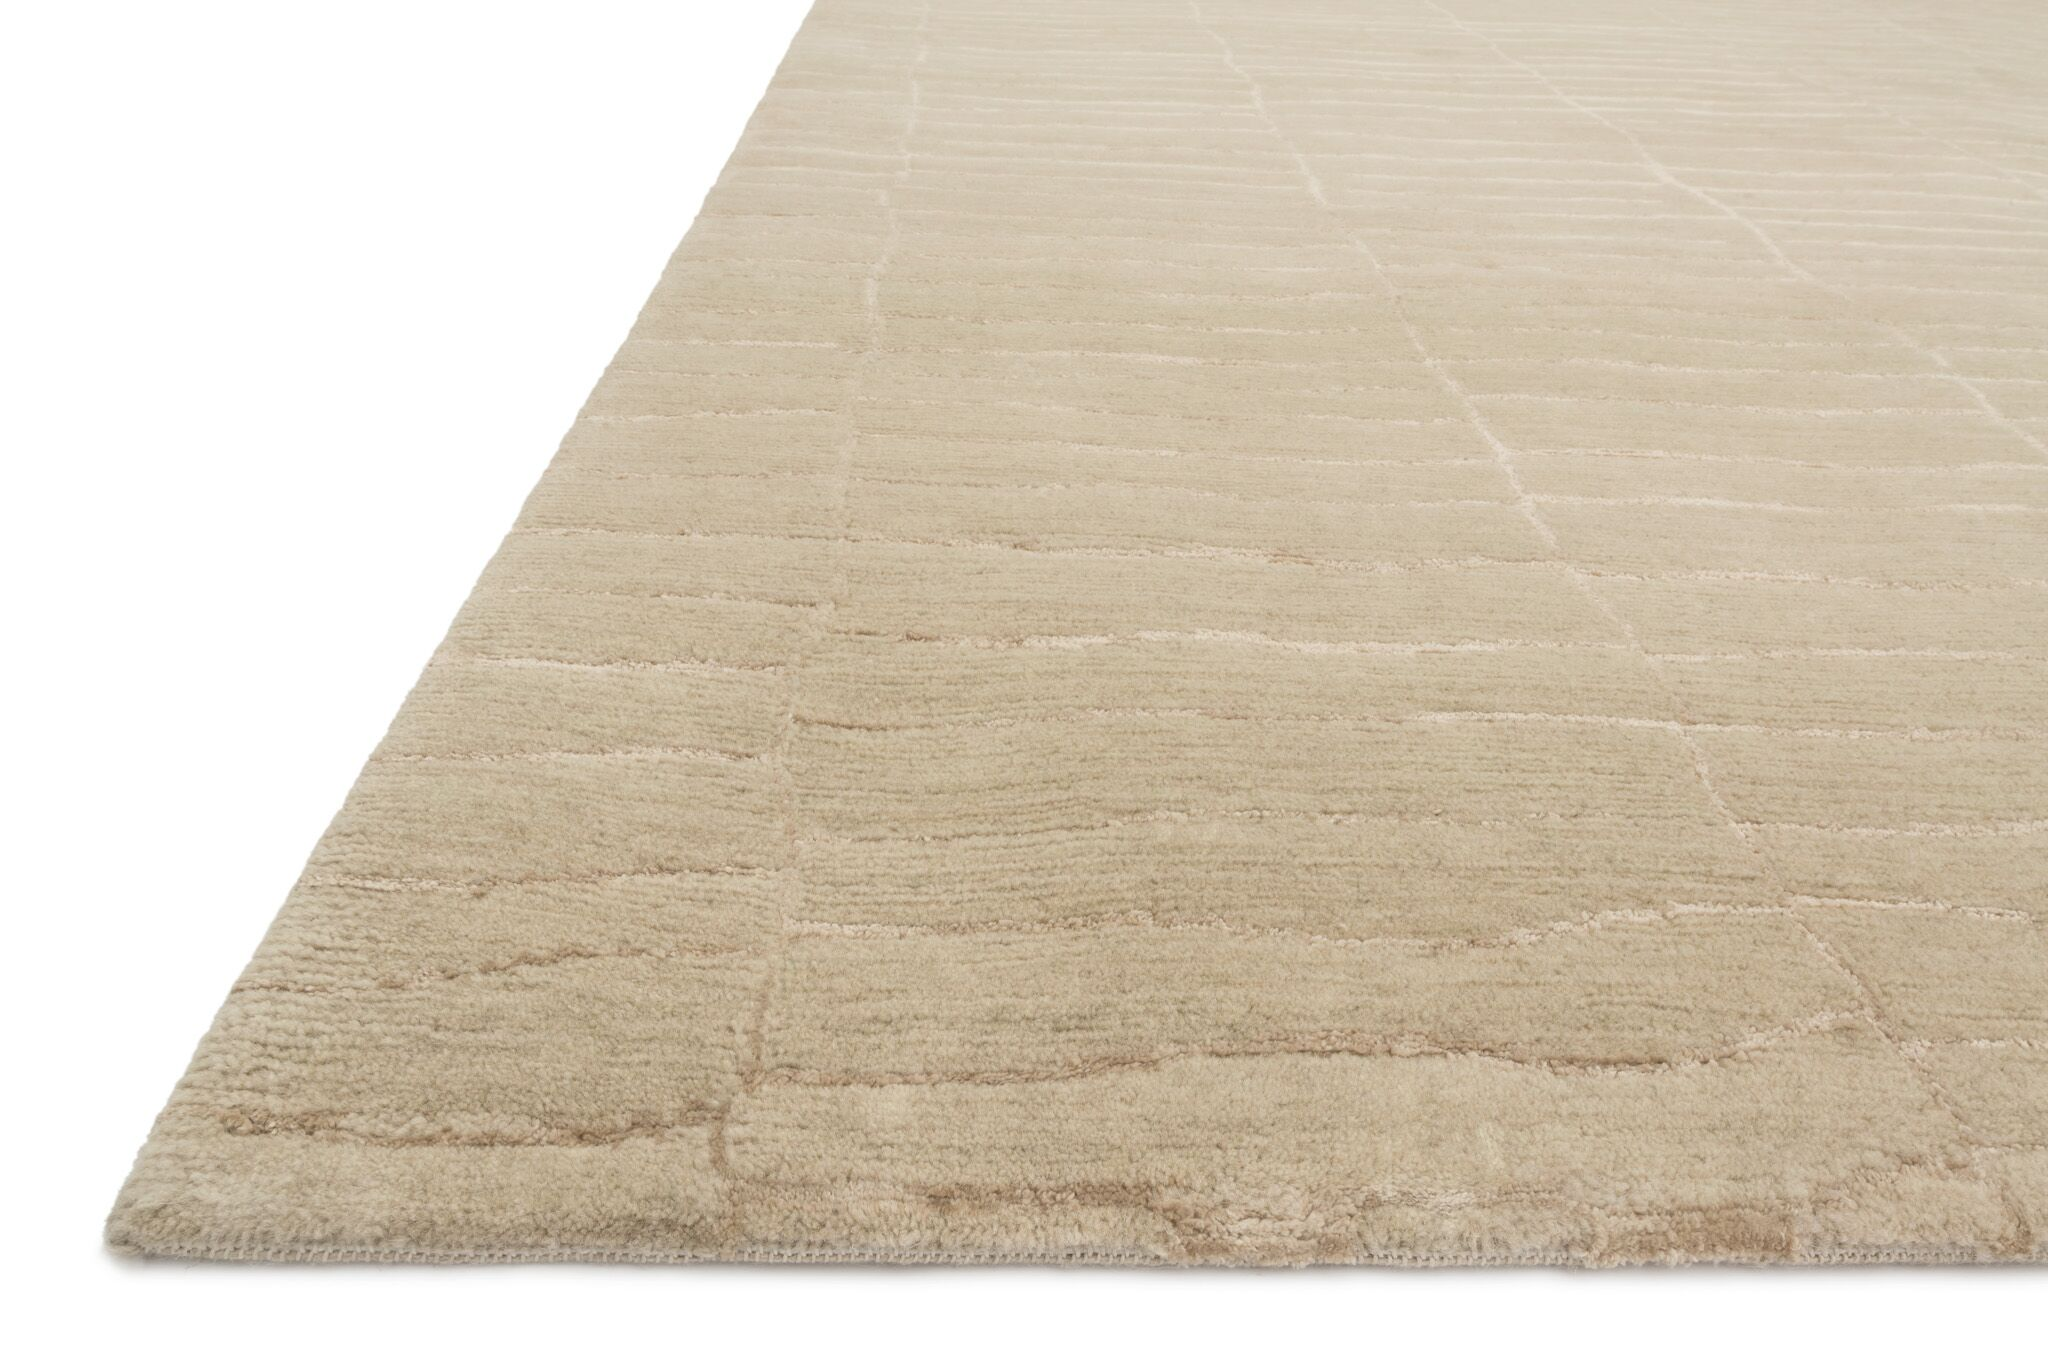 Albinson Hand-Knotted Almond Area Rug Rug Size: Rectangle 5'6